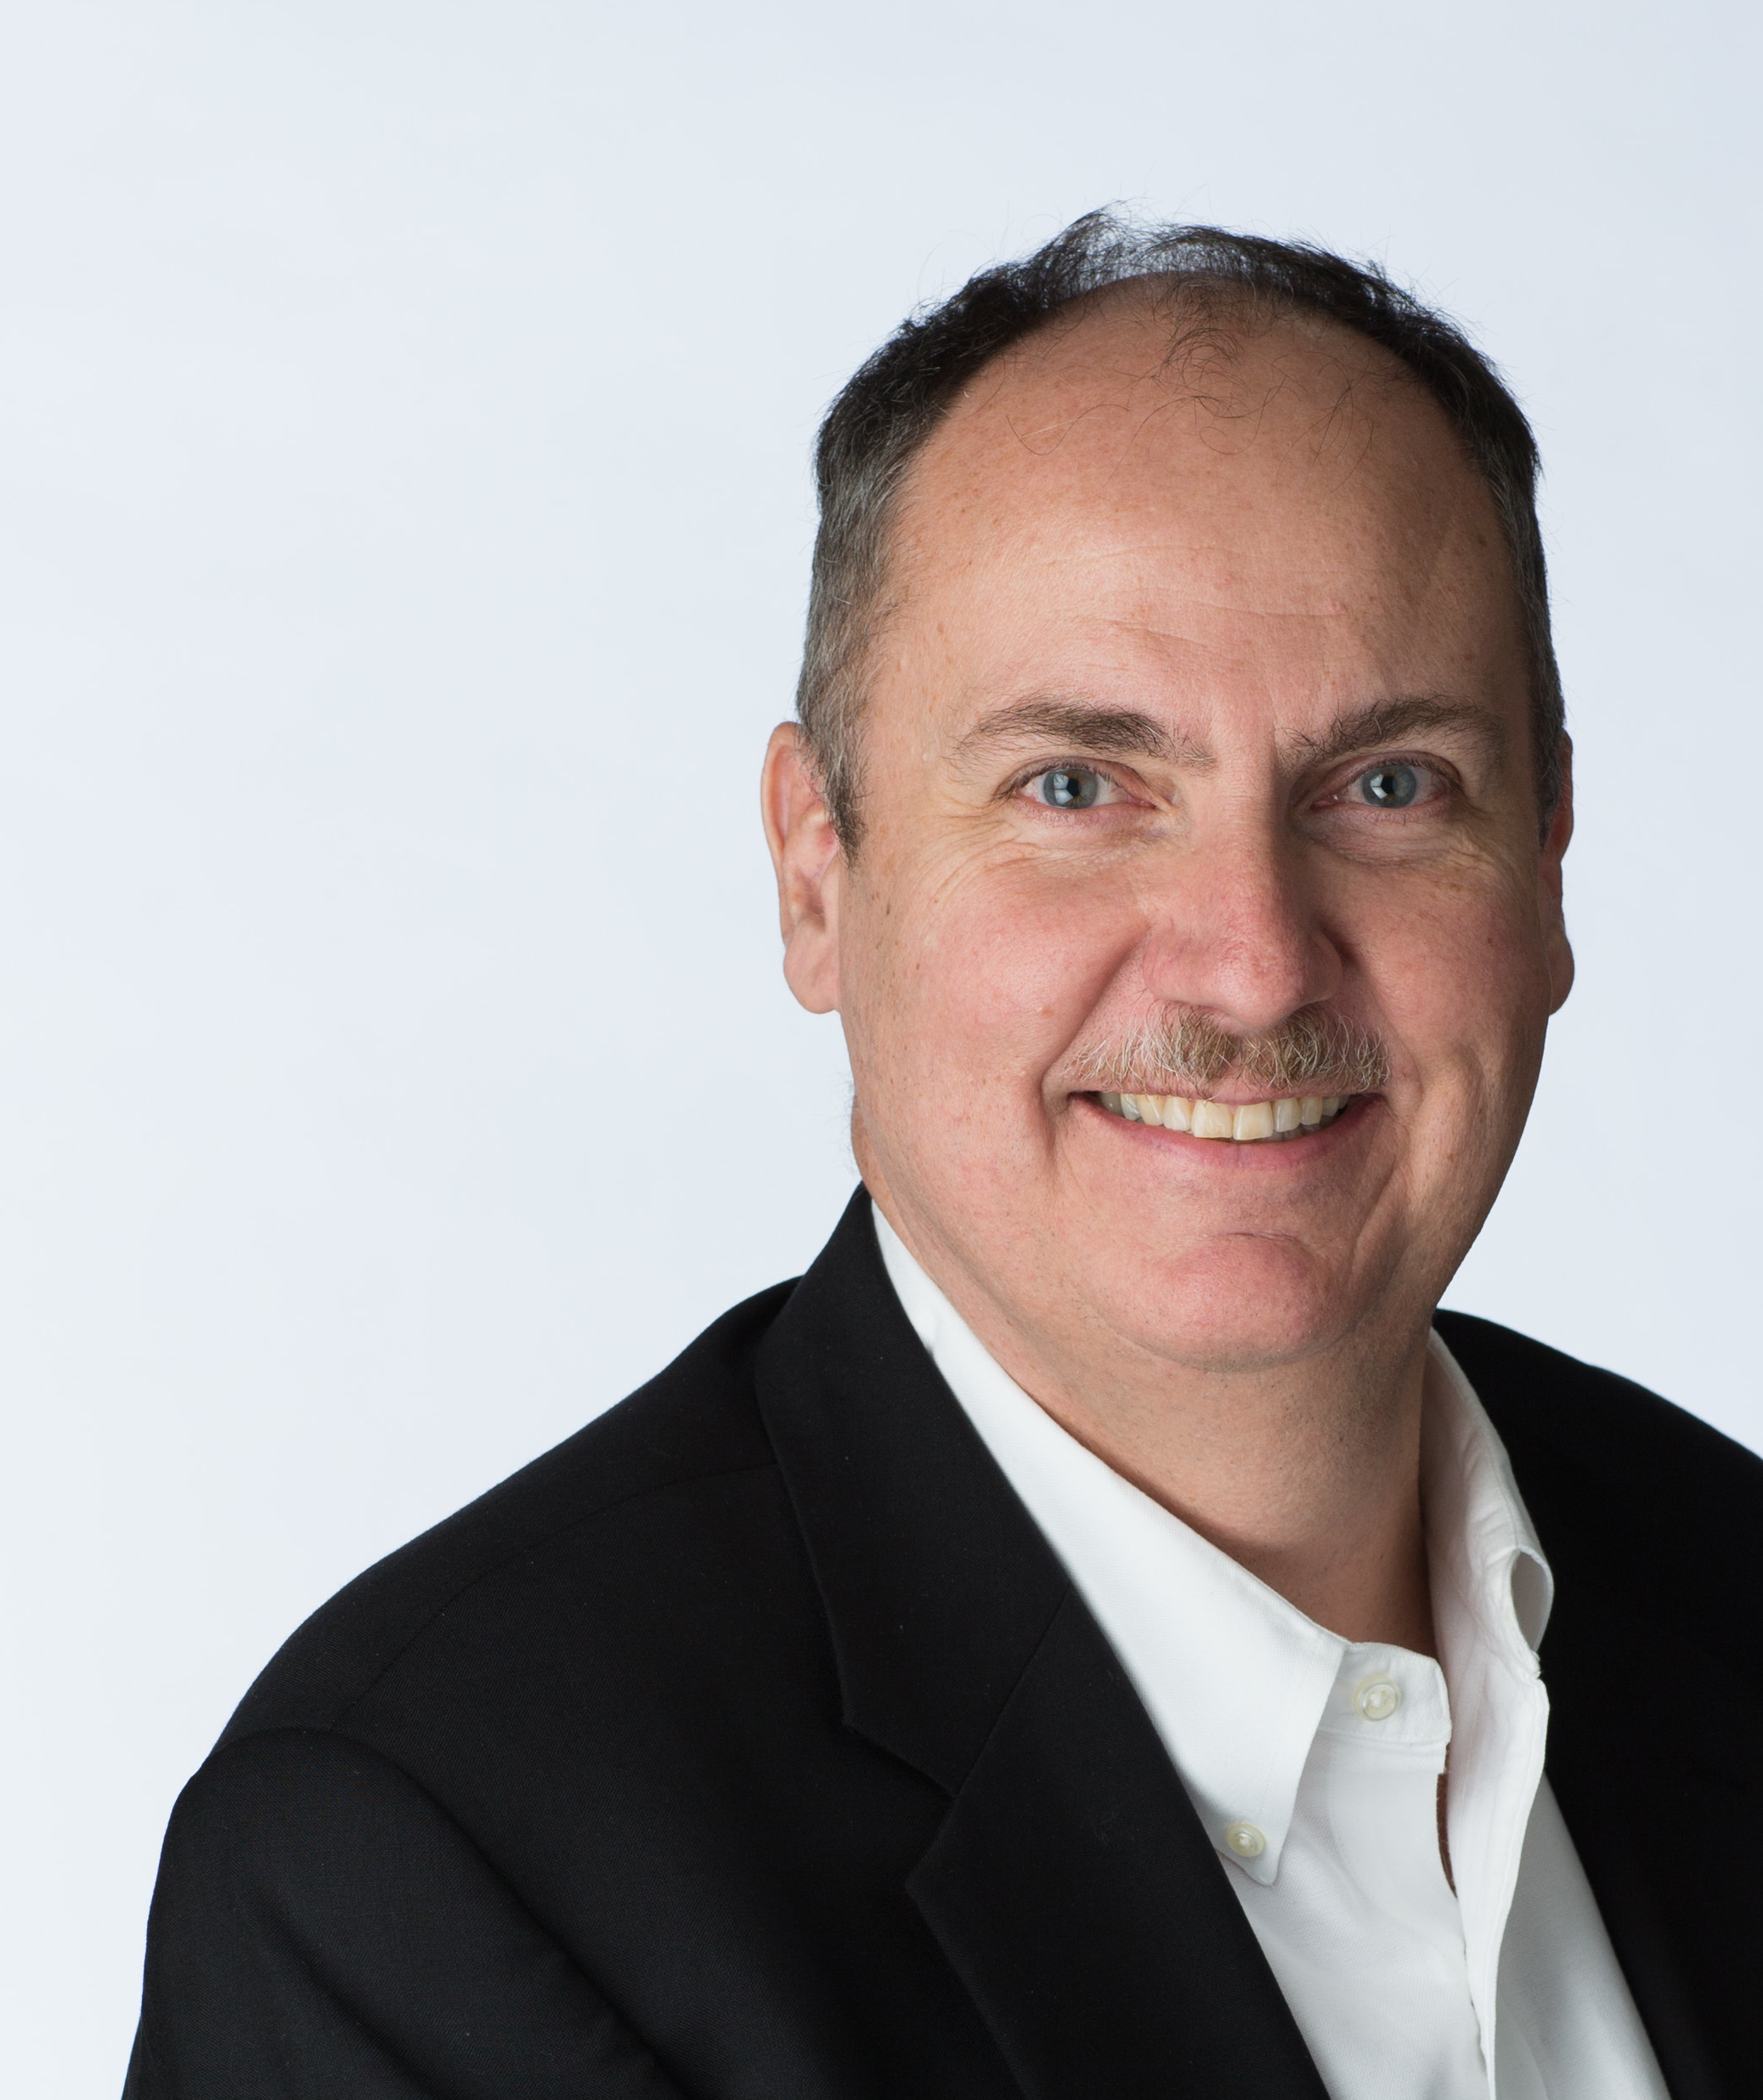 Skip O'Neill joins iPost as Vice President of Sales